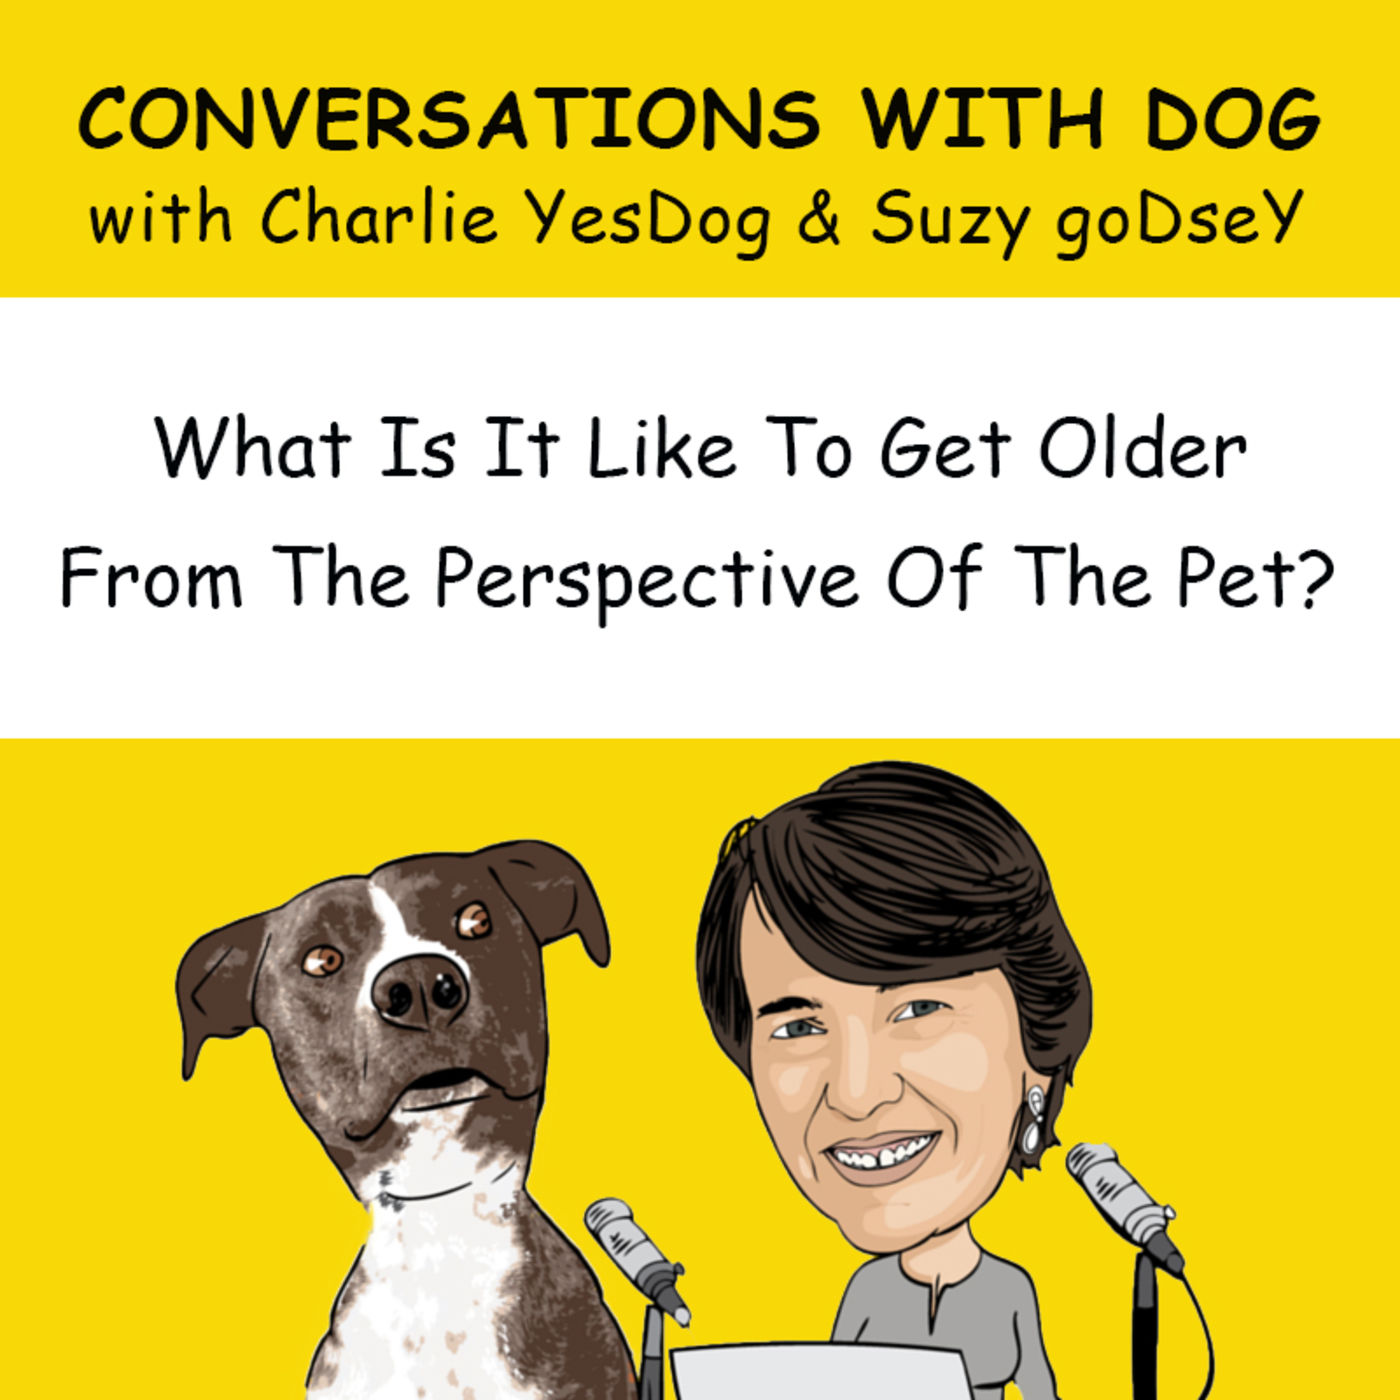 What is it like to get older from the perspective of the pet?